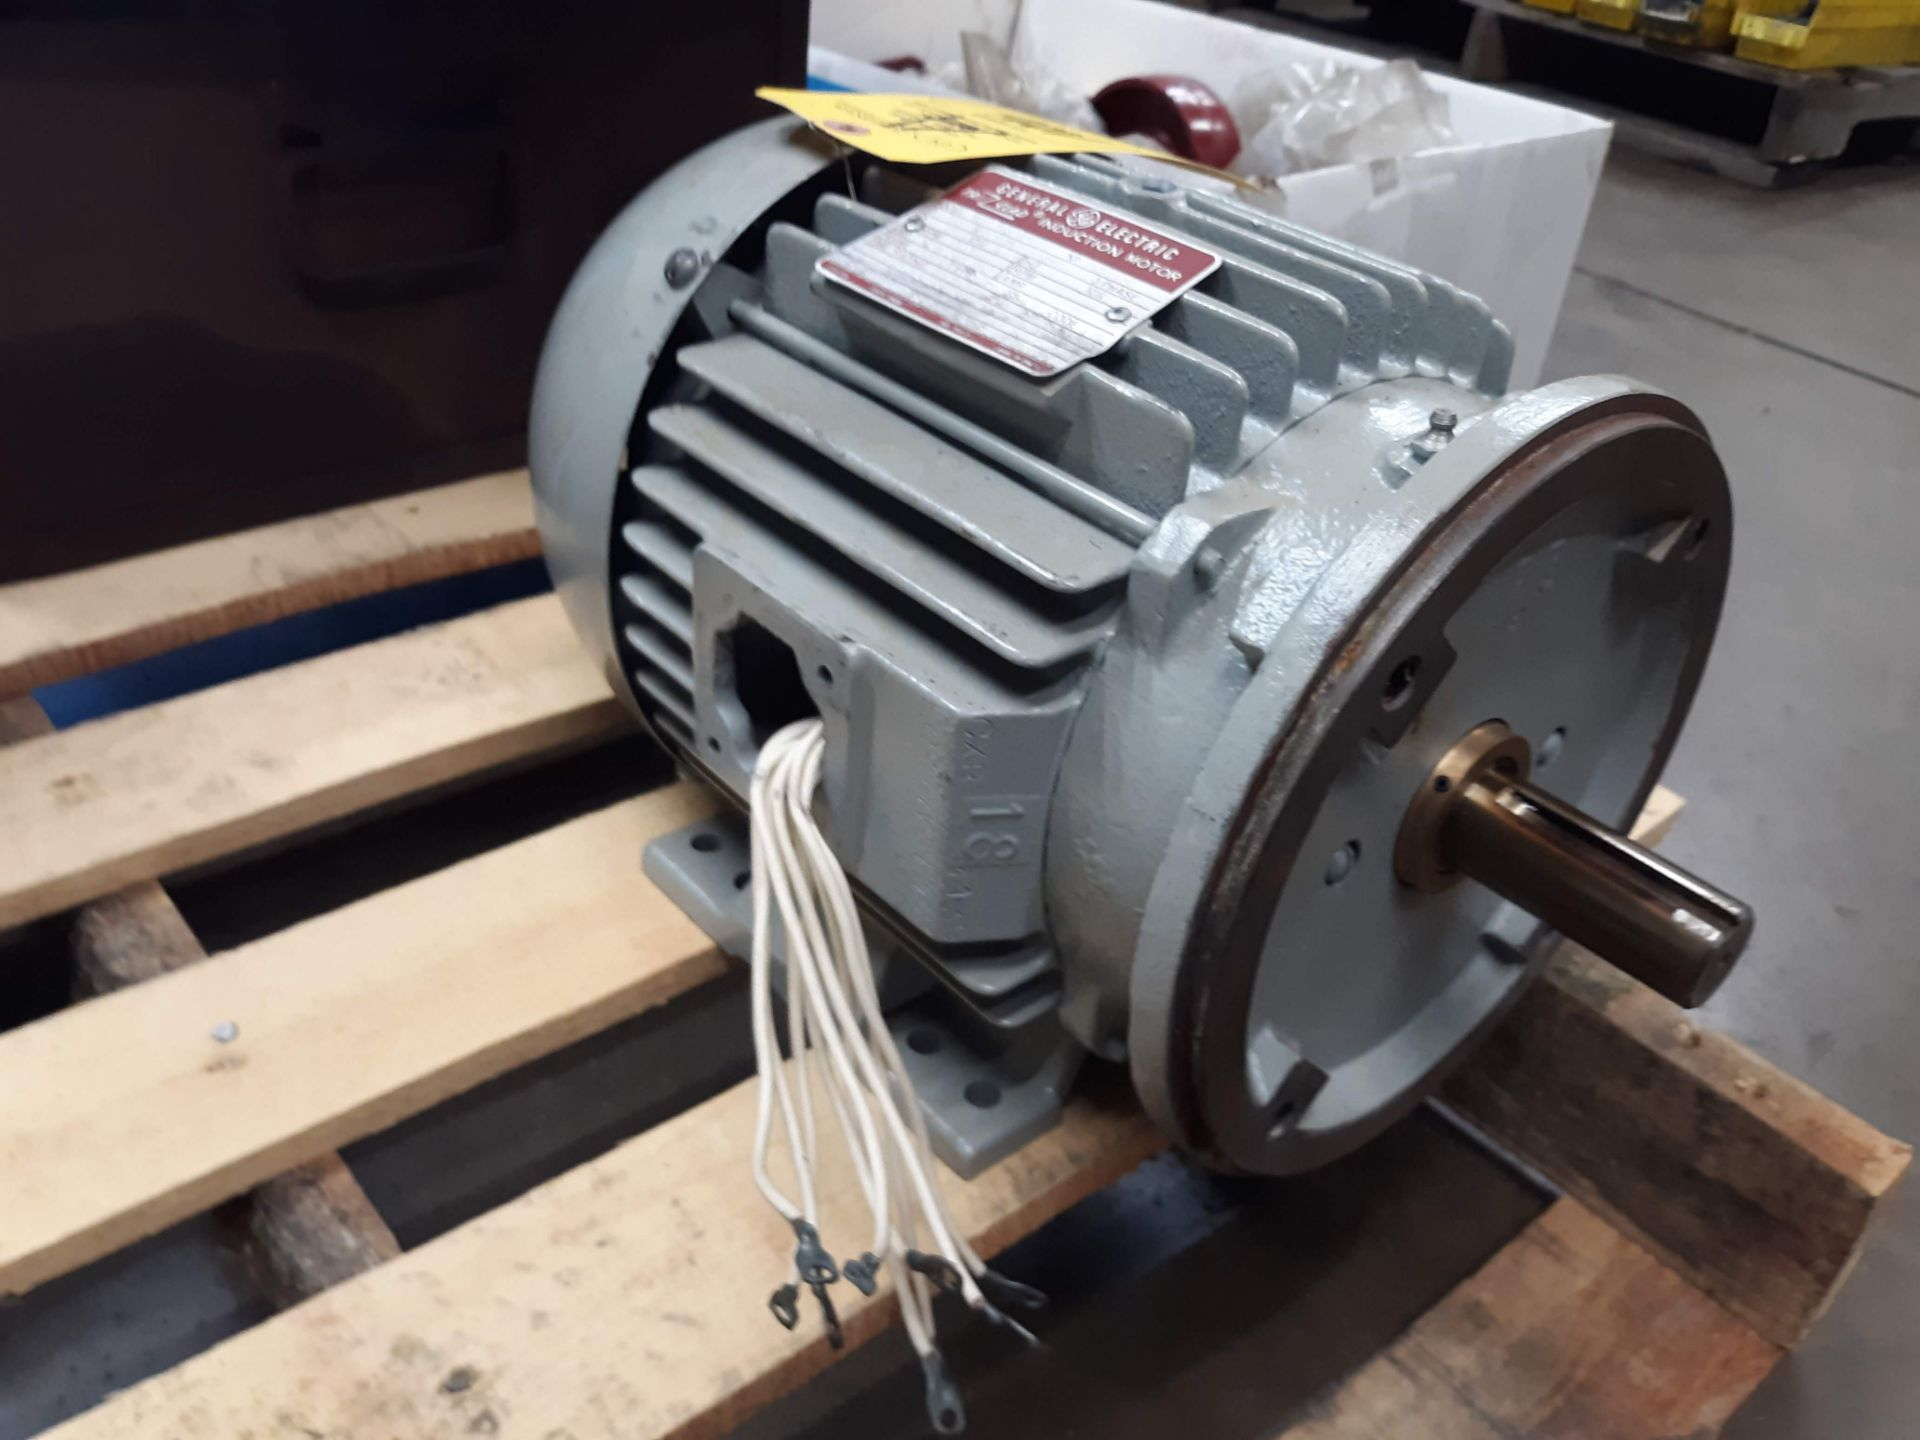 Lot 1006 - GE TRI CLAD AC MOTOR 5HP (LOCATED AT: 432 COUNCIL DRIVE, FORT WAYNE, IN 46825)